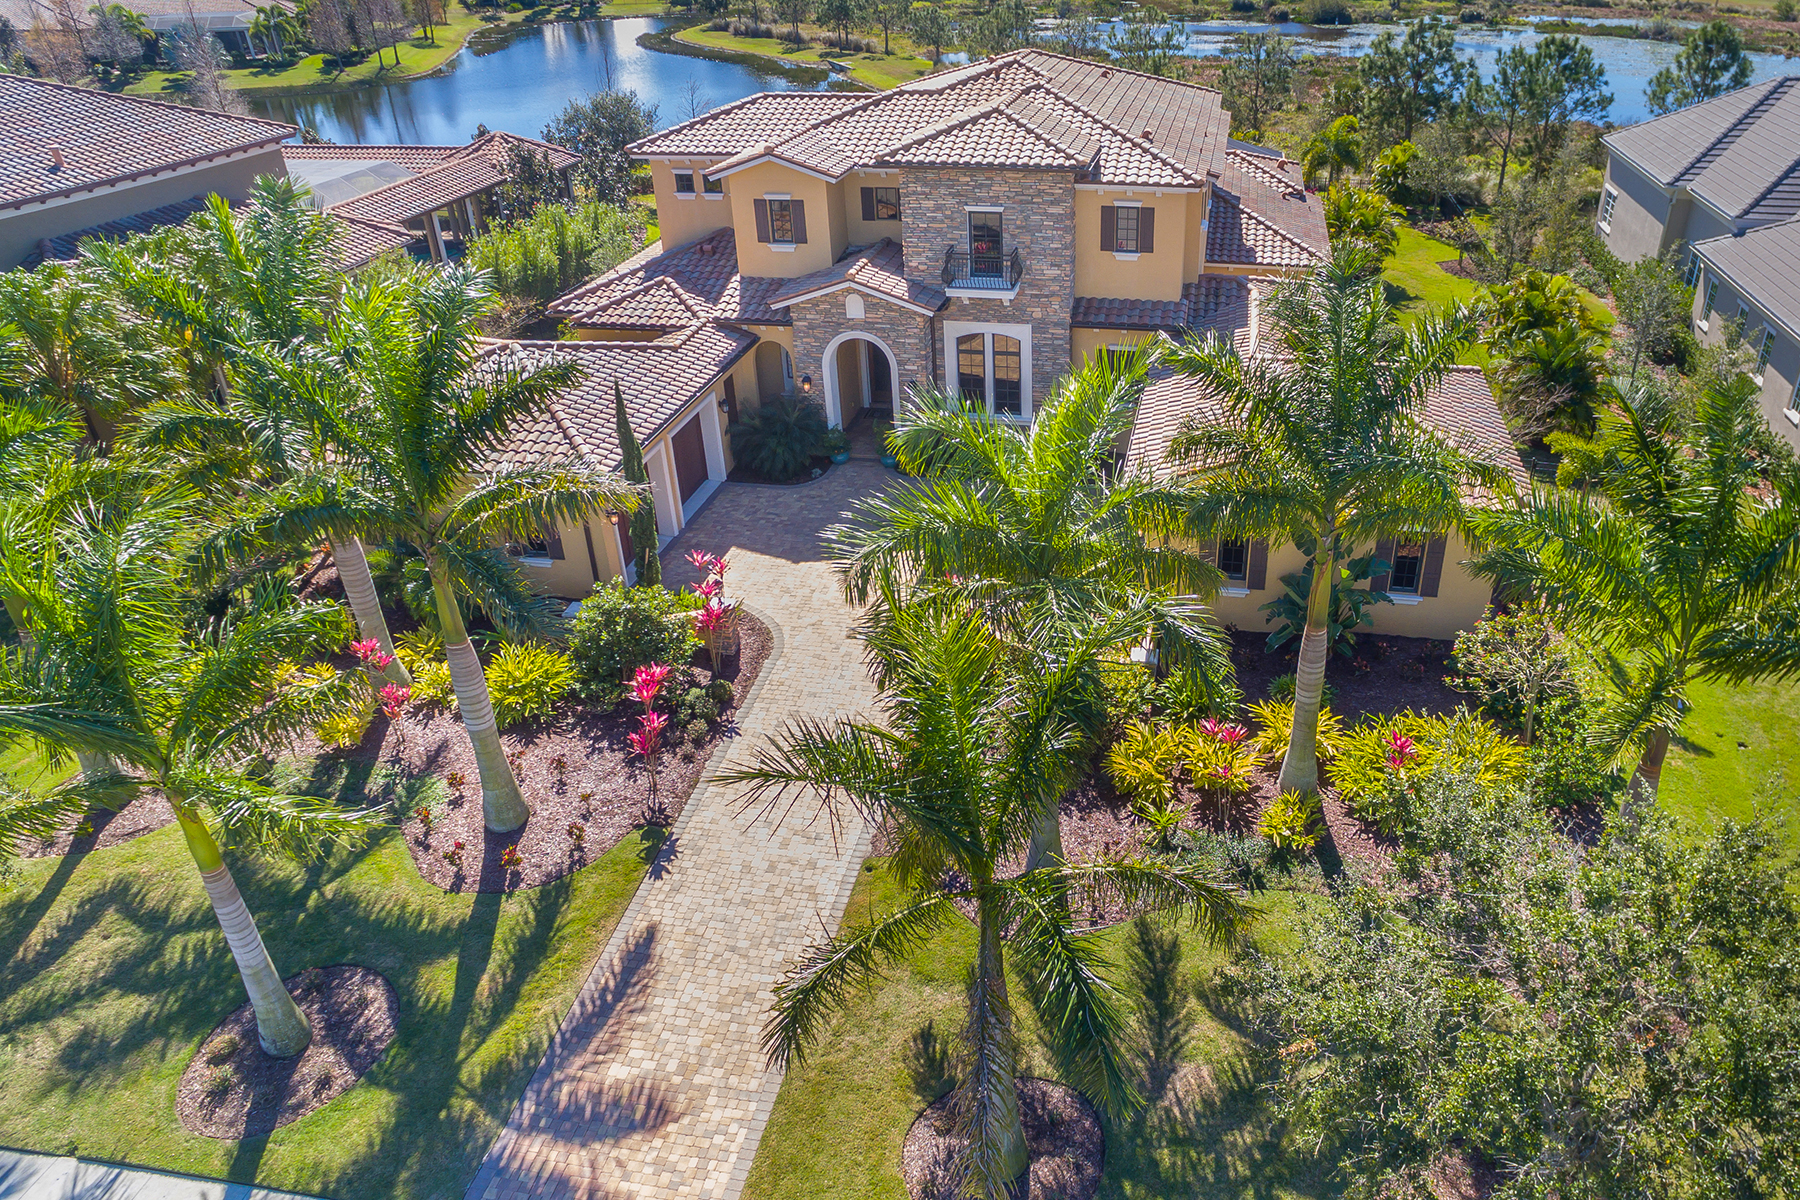 Single Family Home for Sale at THE LAKE CLUB 16116 Clearlake Ave, Lakewood Ranch, Florida, 34202 United States